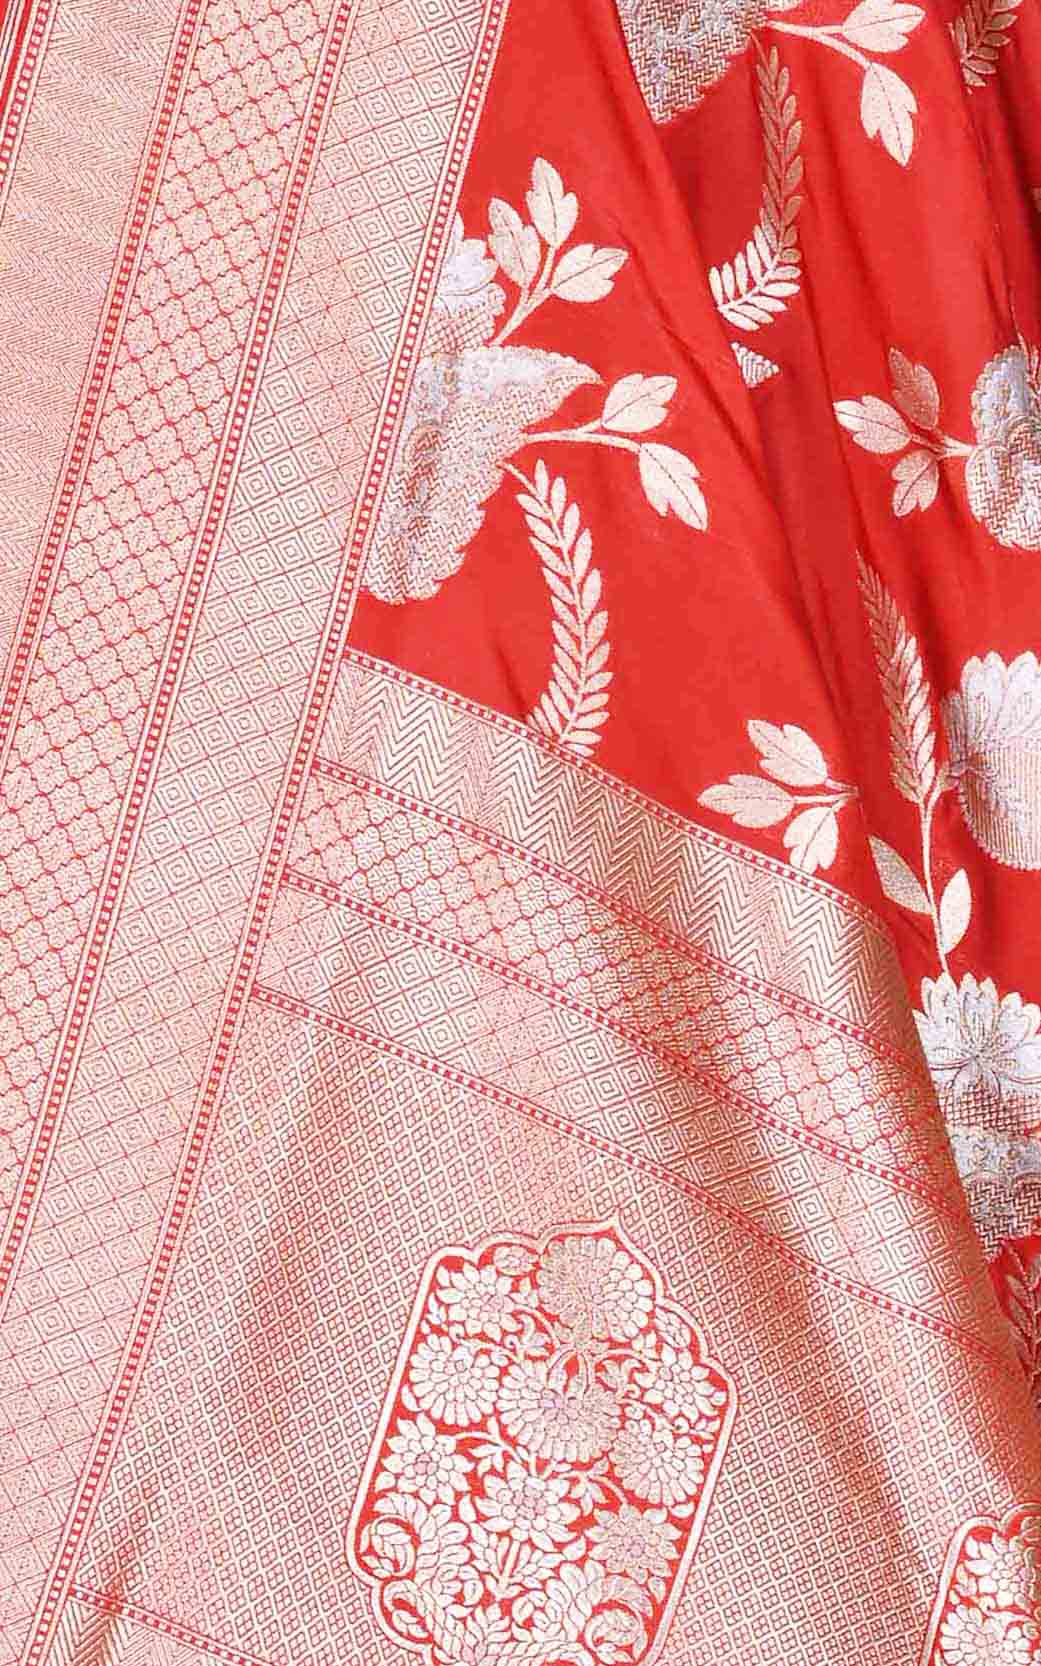 Red katan silk Banarasi dupatta with stylized sona rupa jaal (2) Close up